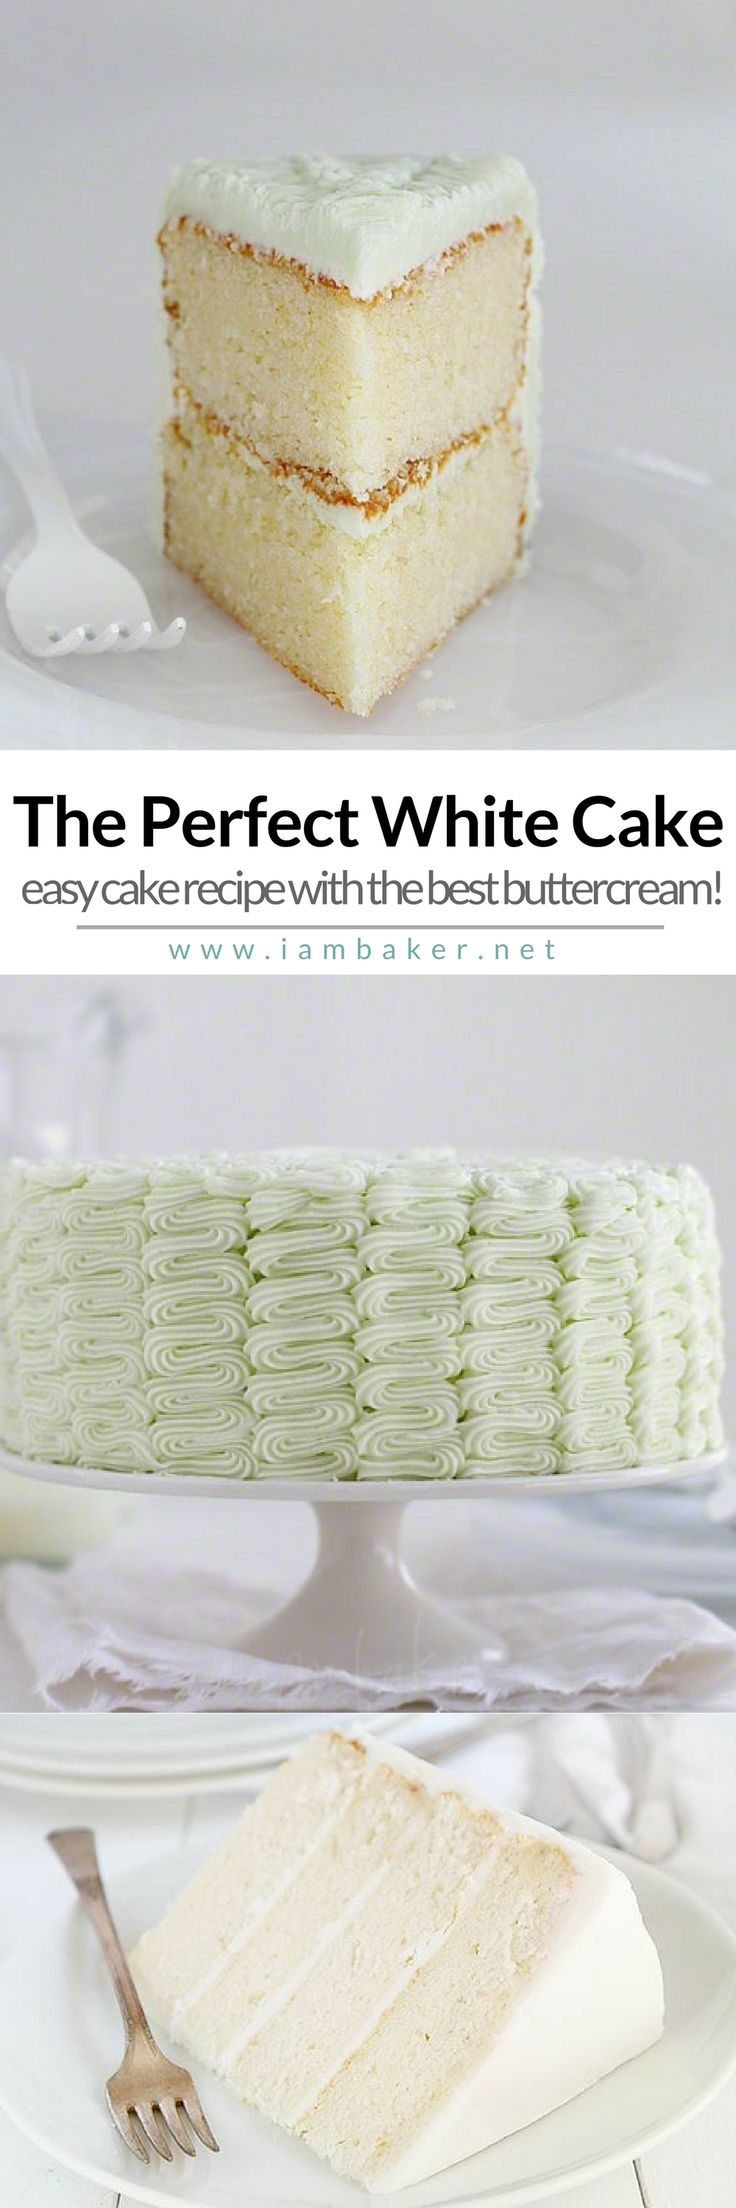 The best homemade white cake recipe-bakery style! The flavor is amazing and the texture is truly perfection.  Perfect white cake with the best buttercream! Visit @iambaker for more sweet cake and dessert recipes! #iambaker #iambakercake #iambakerdessert